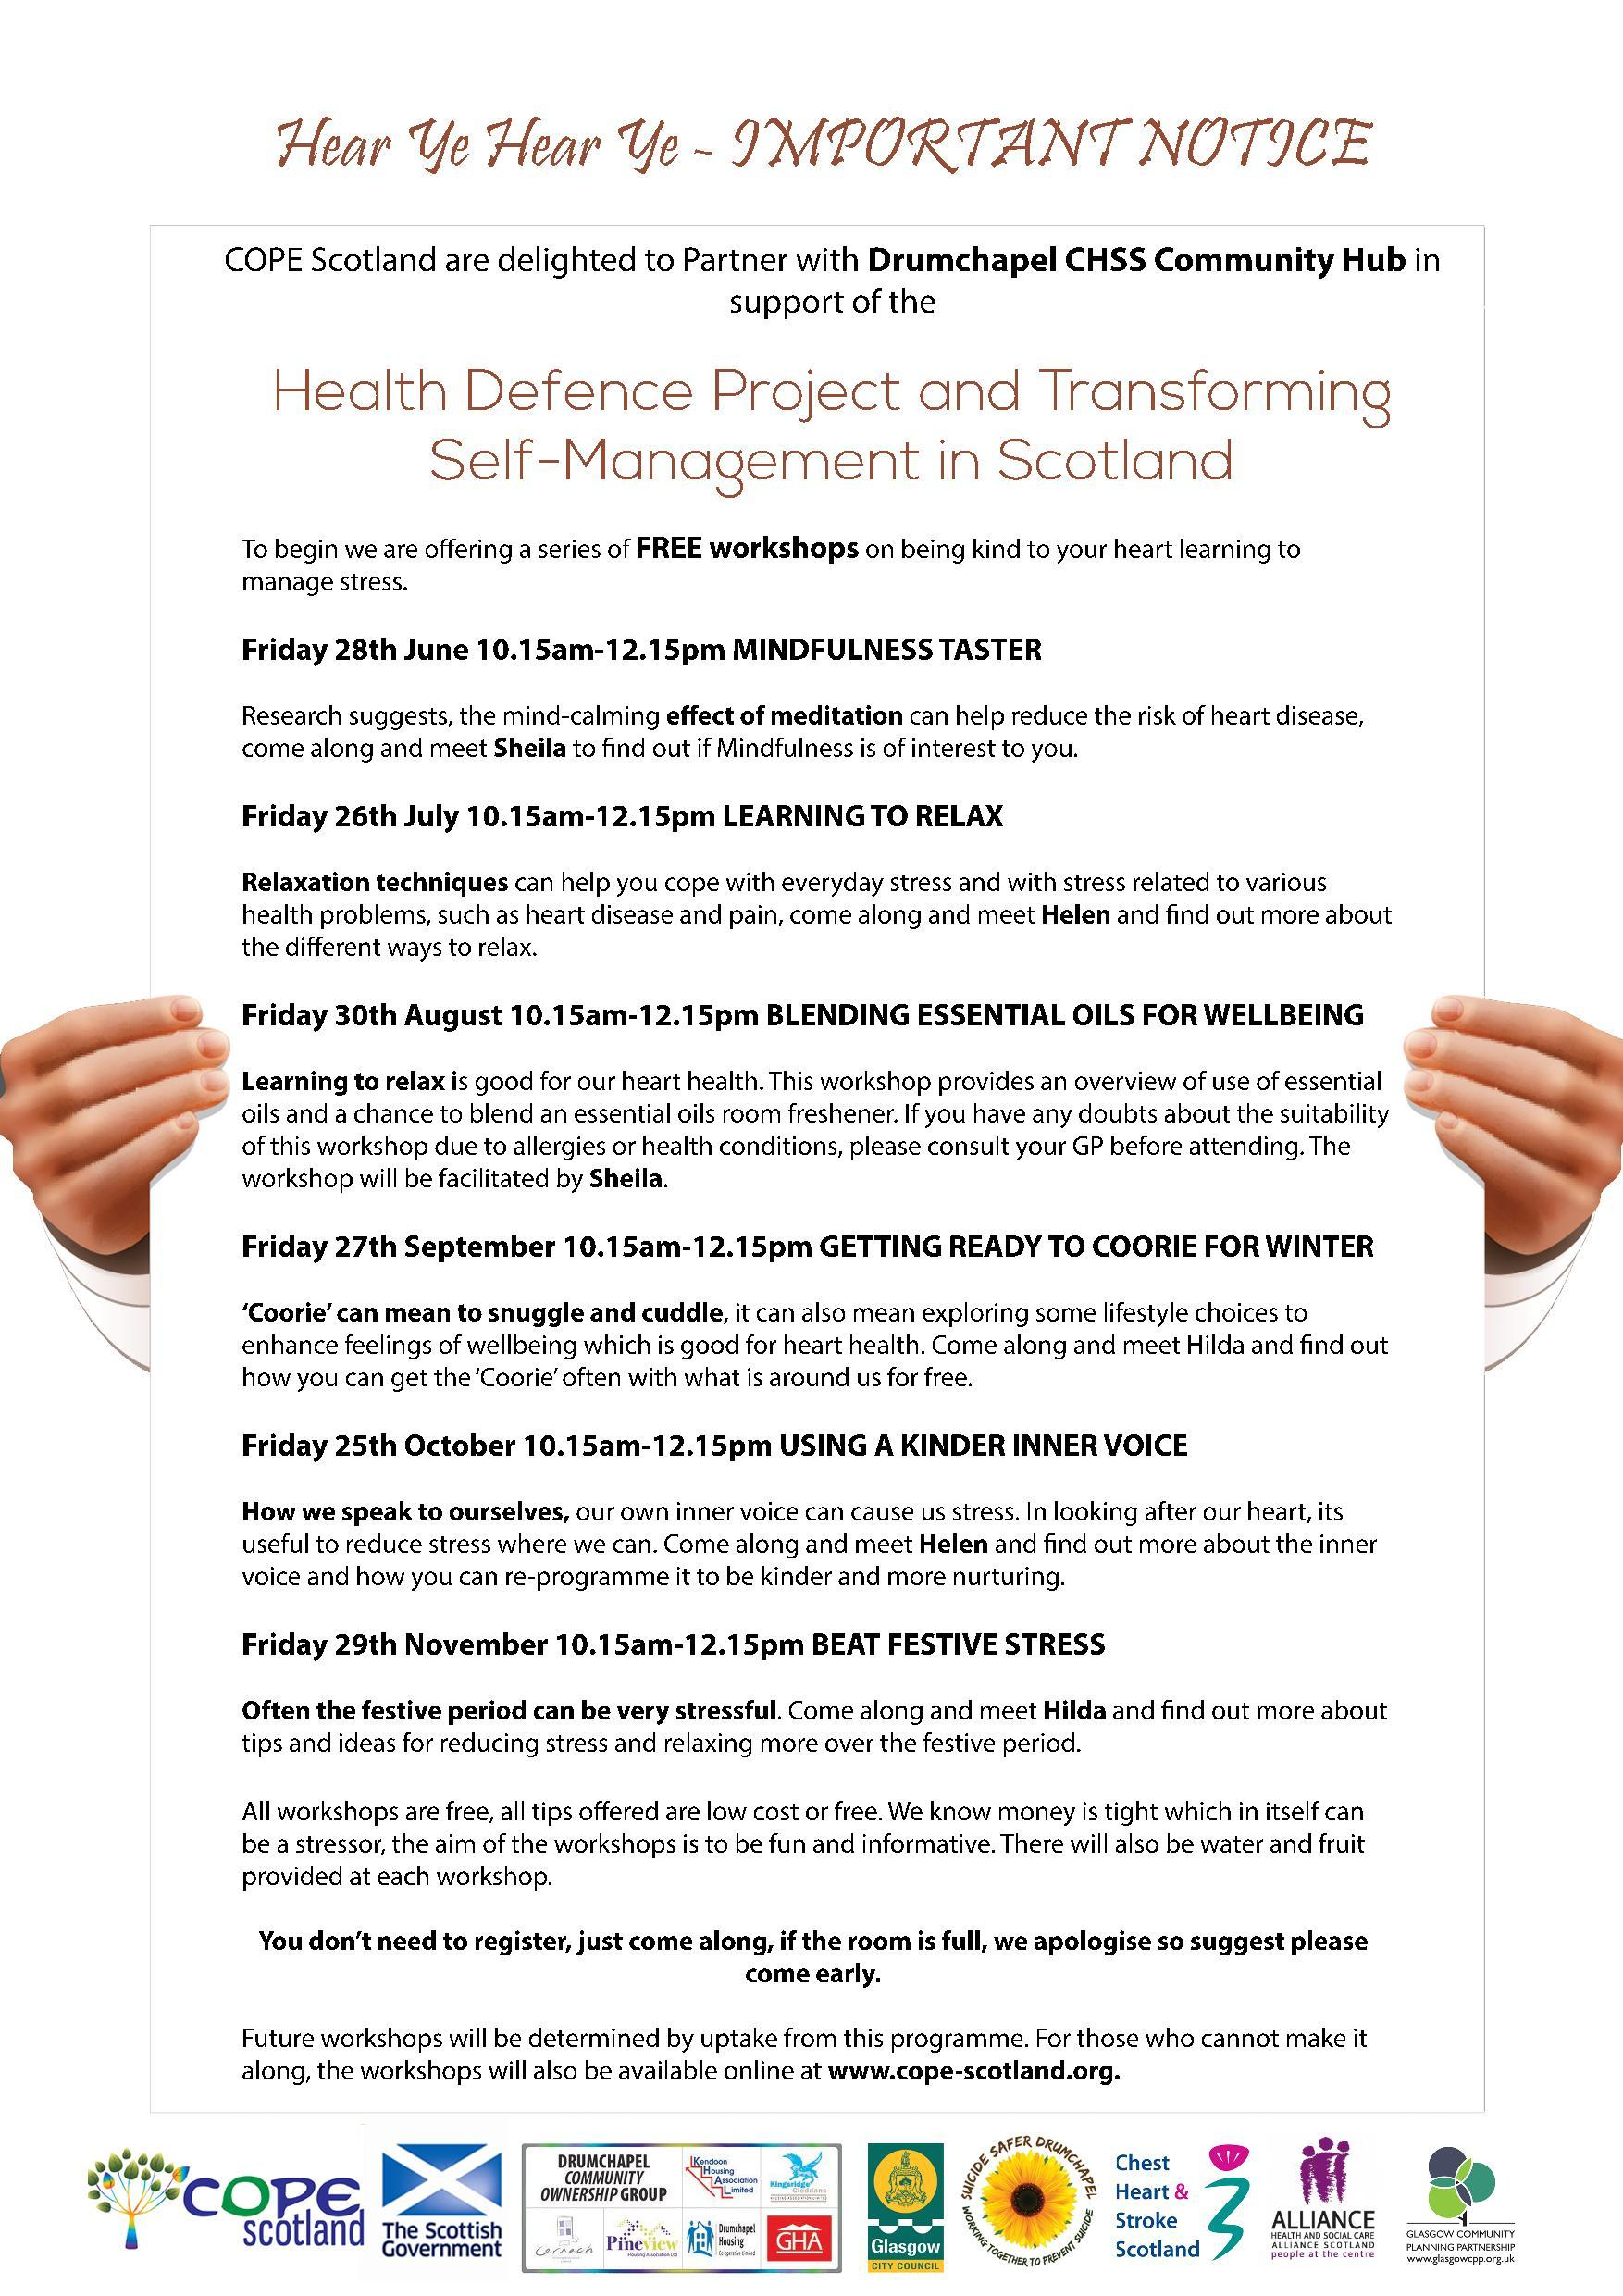 CHSS Health Defence Programme